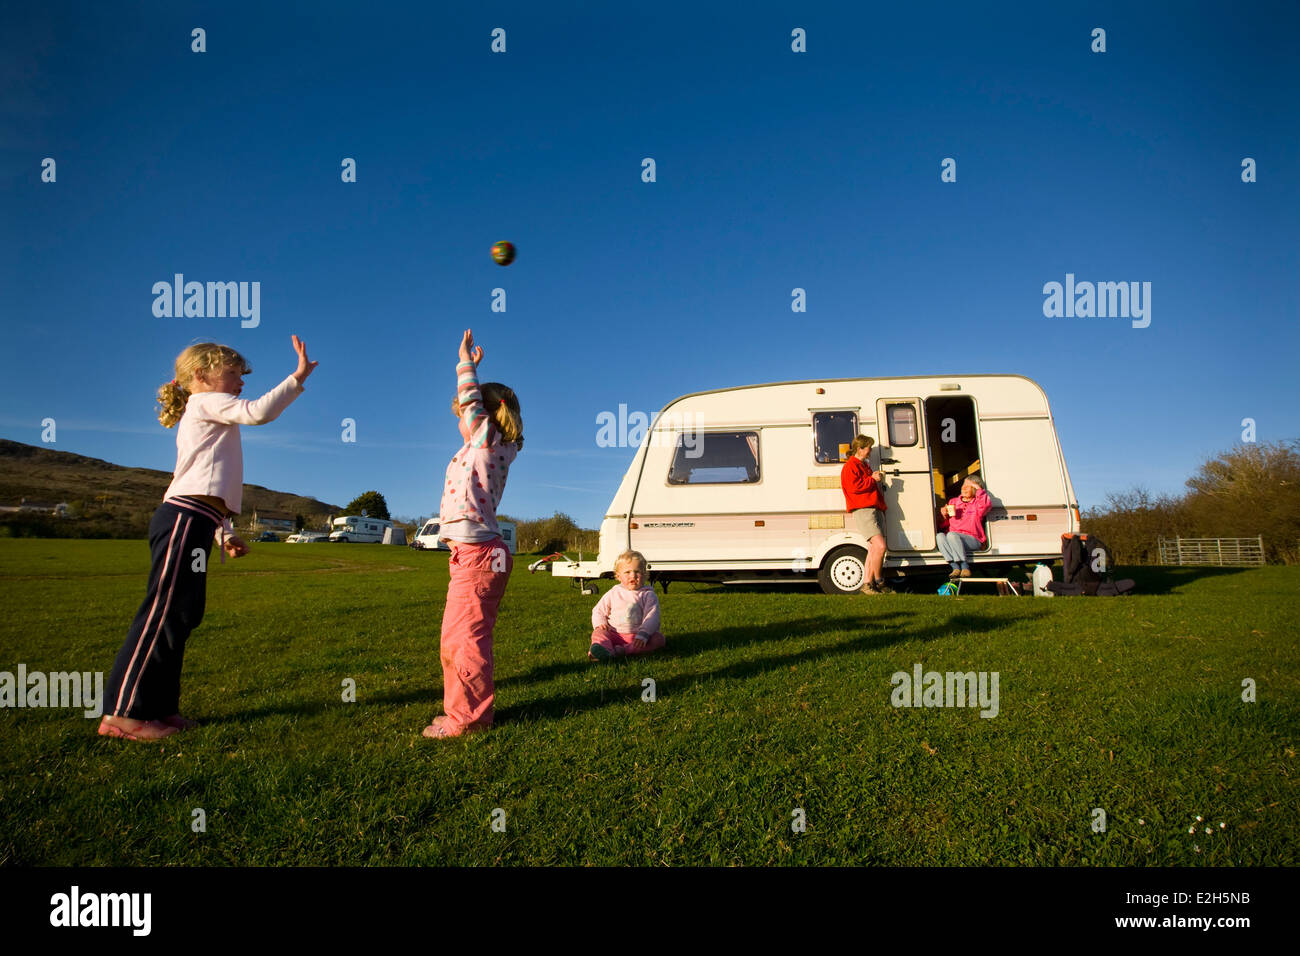 Caravaner's pitching for the night at a caravan site overlooking Oxwich Bay for the night. - Stock Image